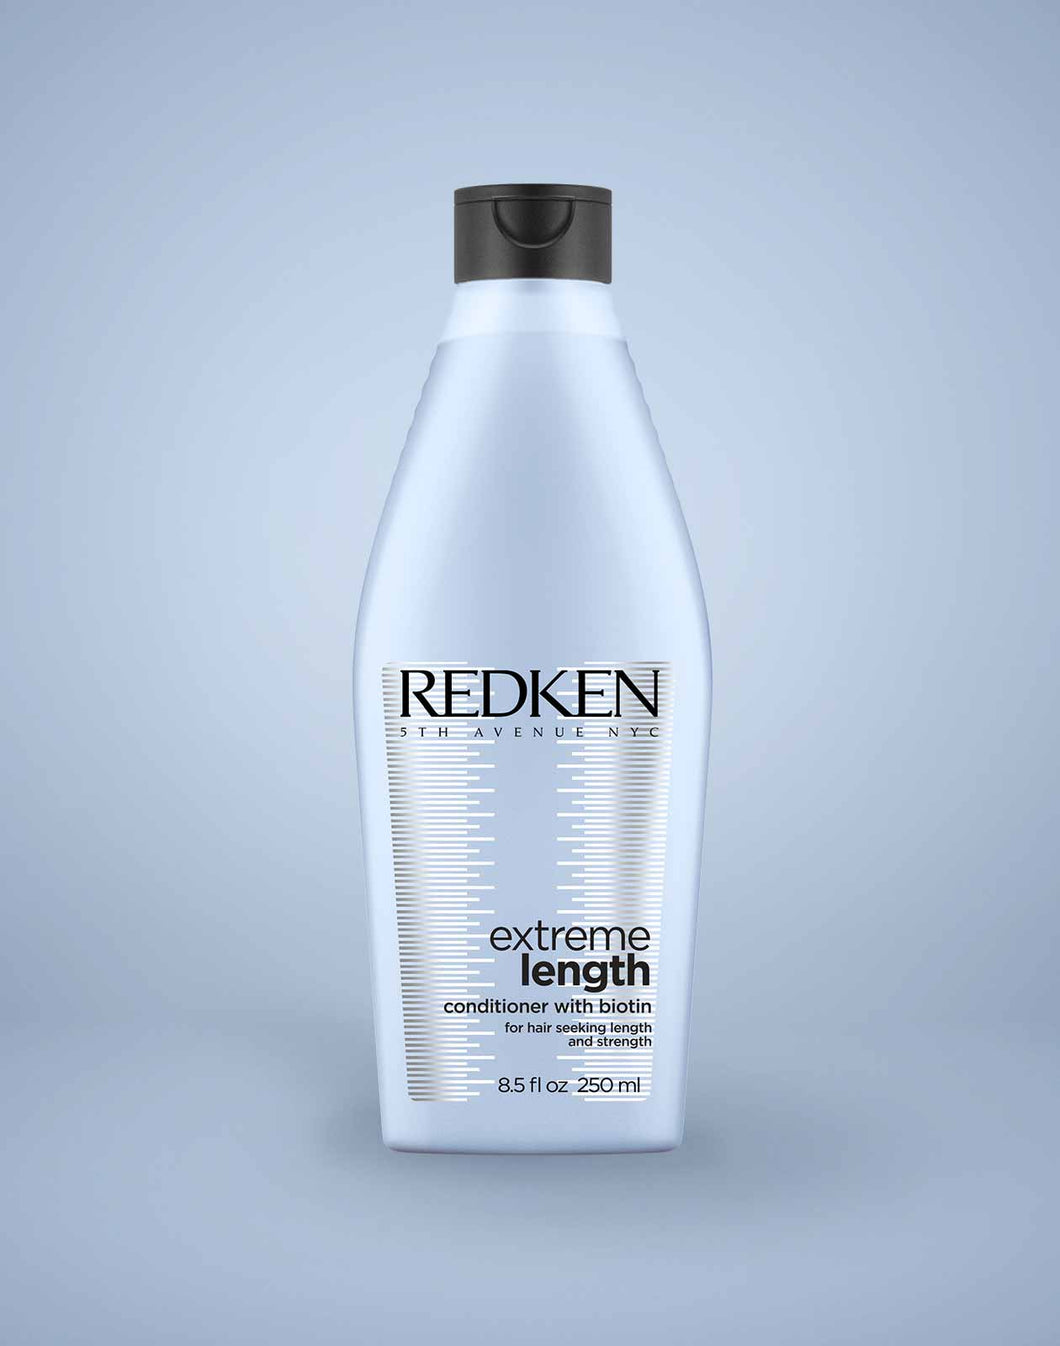 Redken EXTREME LENGTH CONDITIONER WITH BIOTIN - The Color Studio & Salon